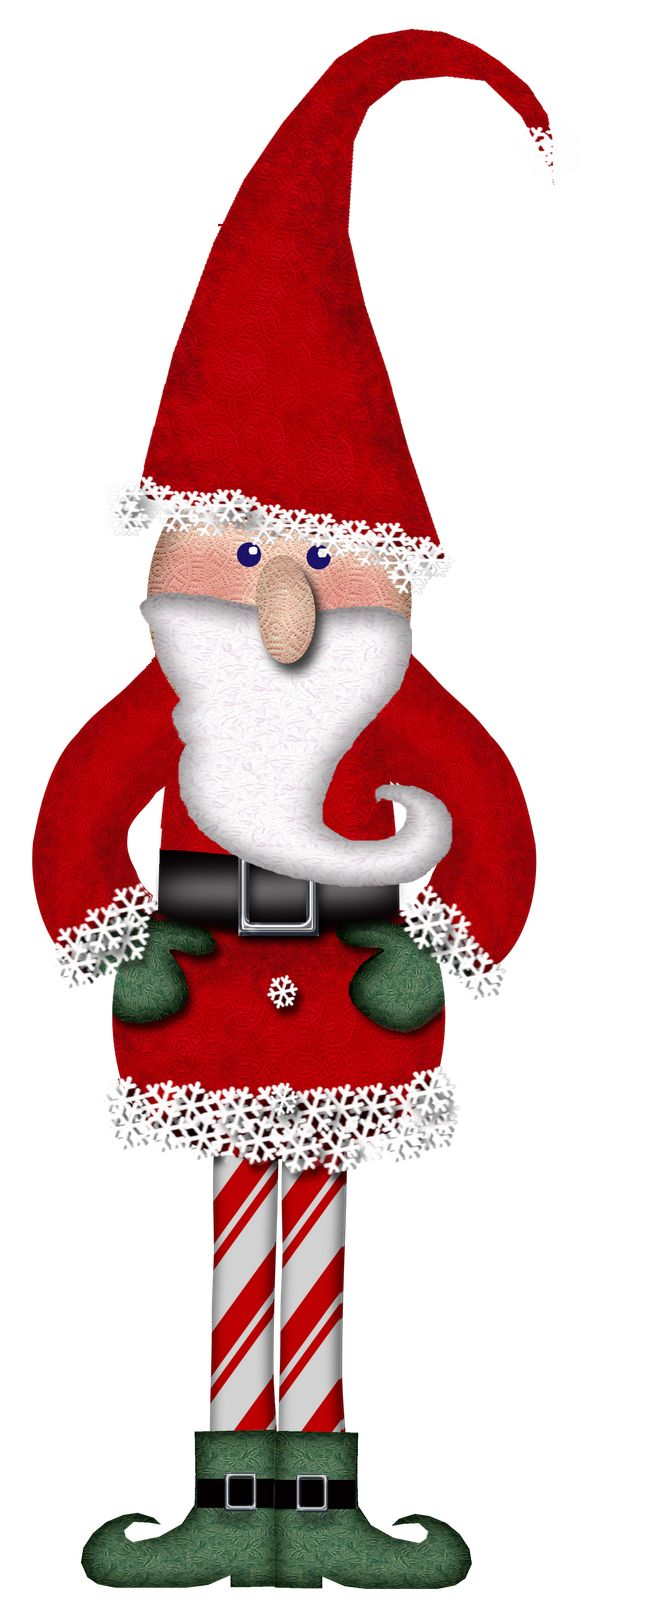 653x1600 Merry Christmas Clip Art Images